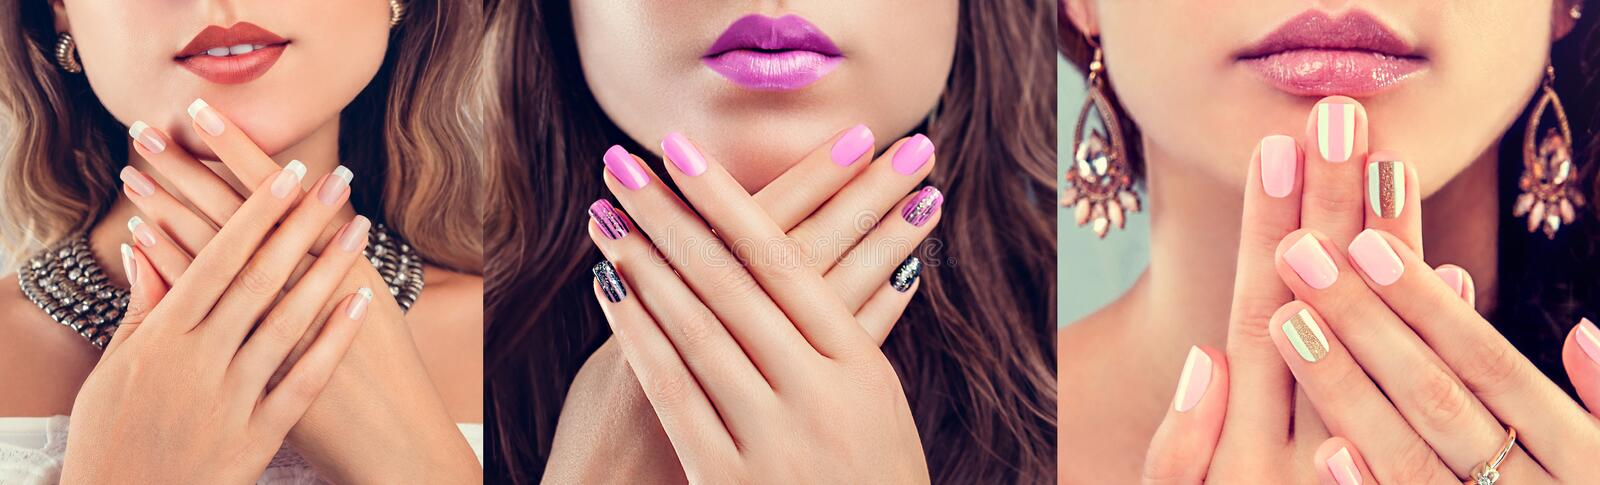 Nail art and design. Beauty fashion model with different make-up and manicure wearing jewelry. Set of nude looks stock image